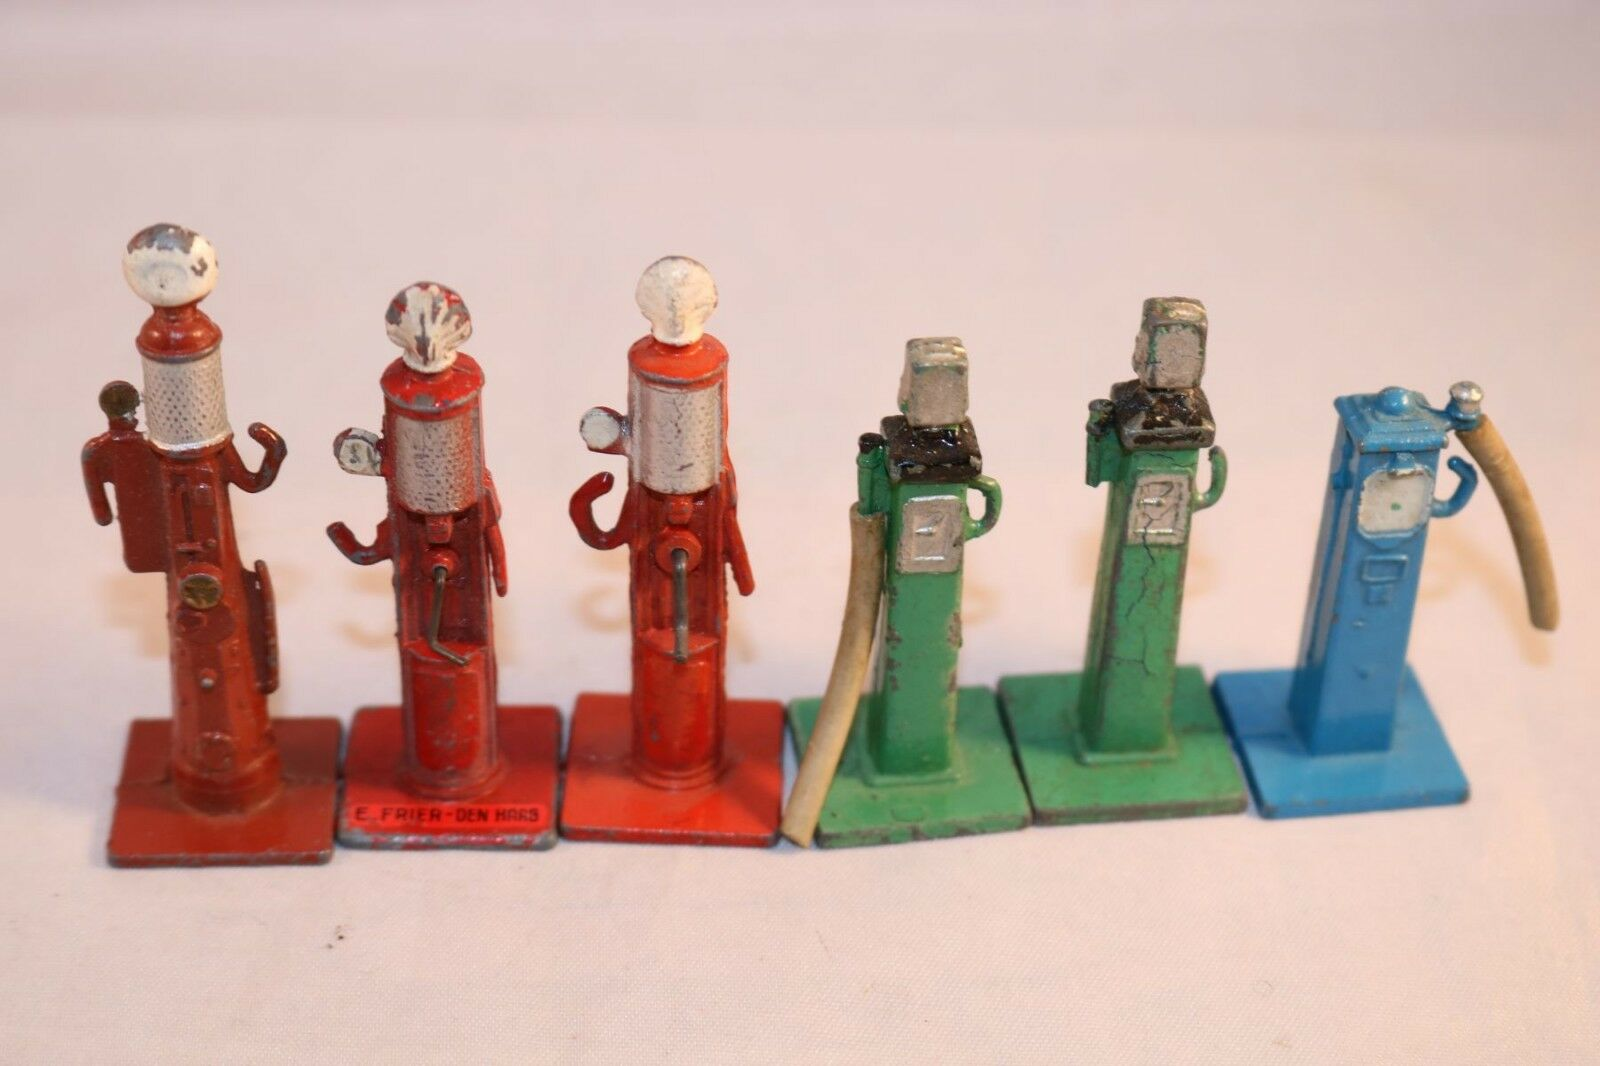 Dinky Toys 49 Petrol pumps very old 6 pumps in excellent all original condition